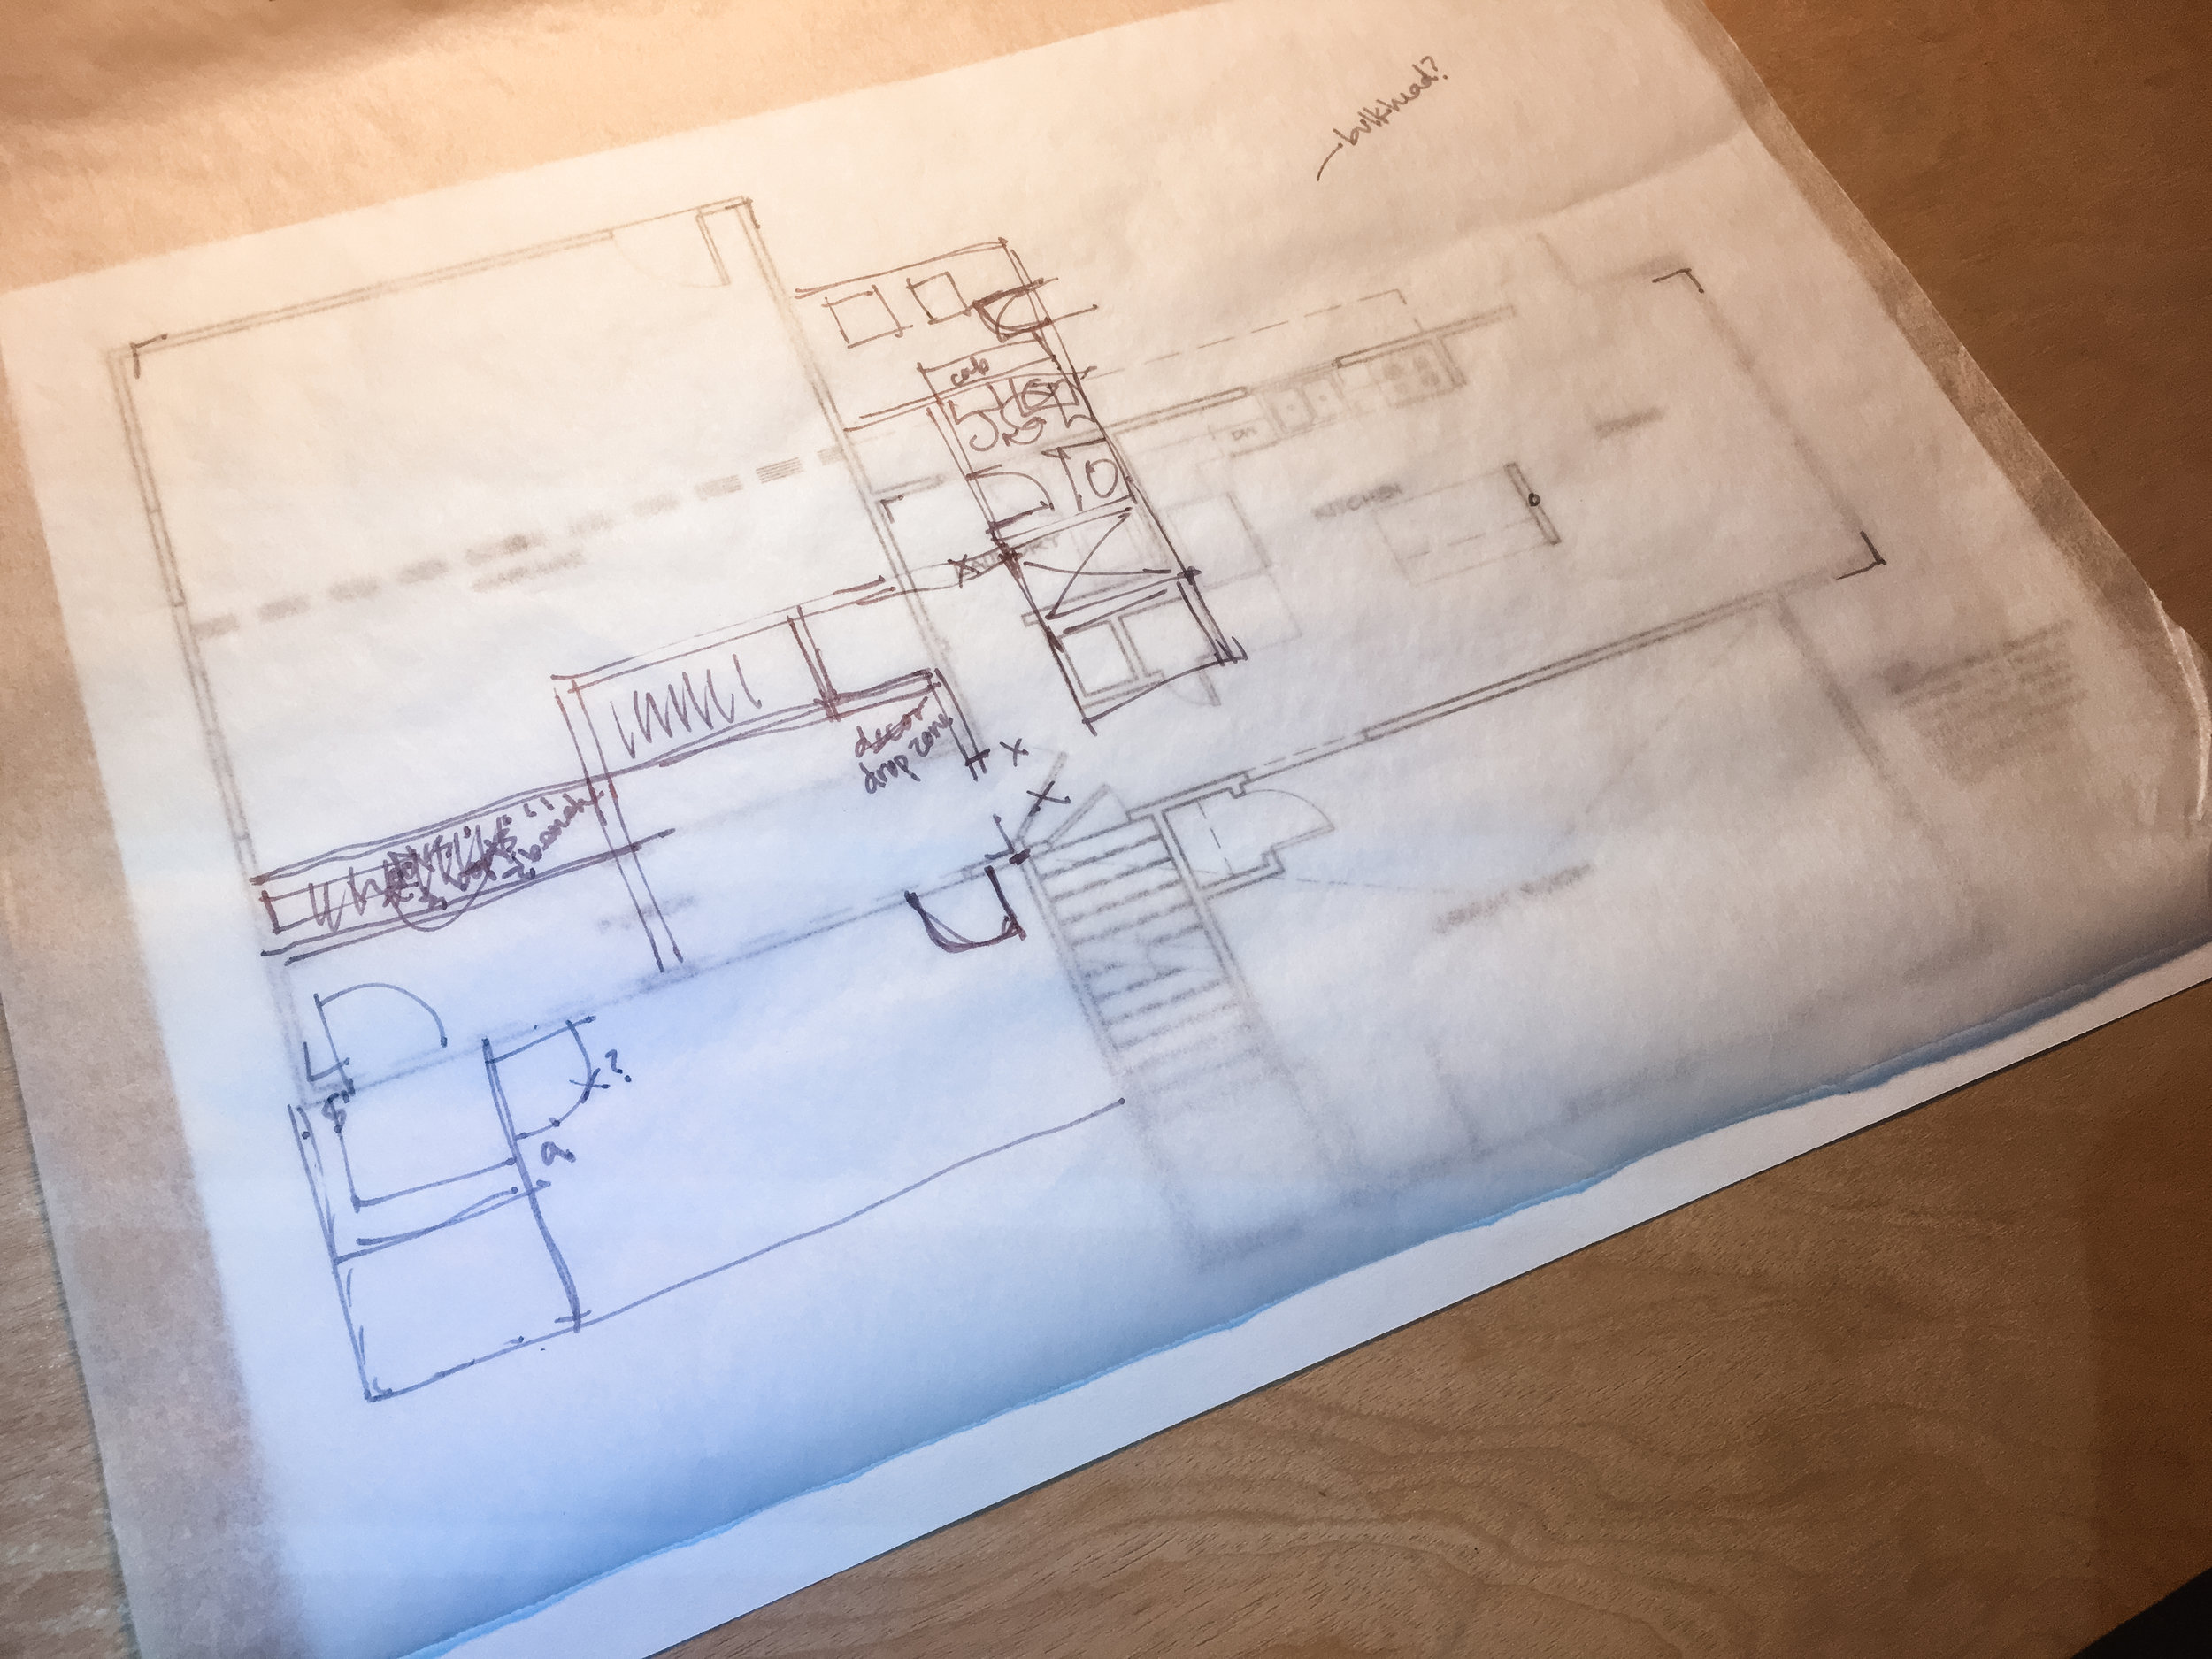 When I'm struggling with a design, I have to get off AutoCAD and back to basics: trace paper over a print out! ✍🏼  This is one of my Maine projects. We're adding a big front porch, adding onto the kitchen, creating a new bathroom and utility room, and converting the garage into a den & craft room.  It's a lot to do in a tight space. Luckily, this is my specialty. 😄